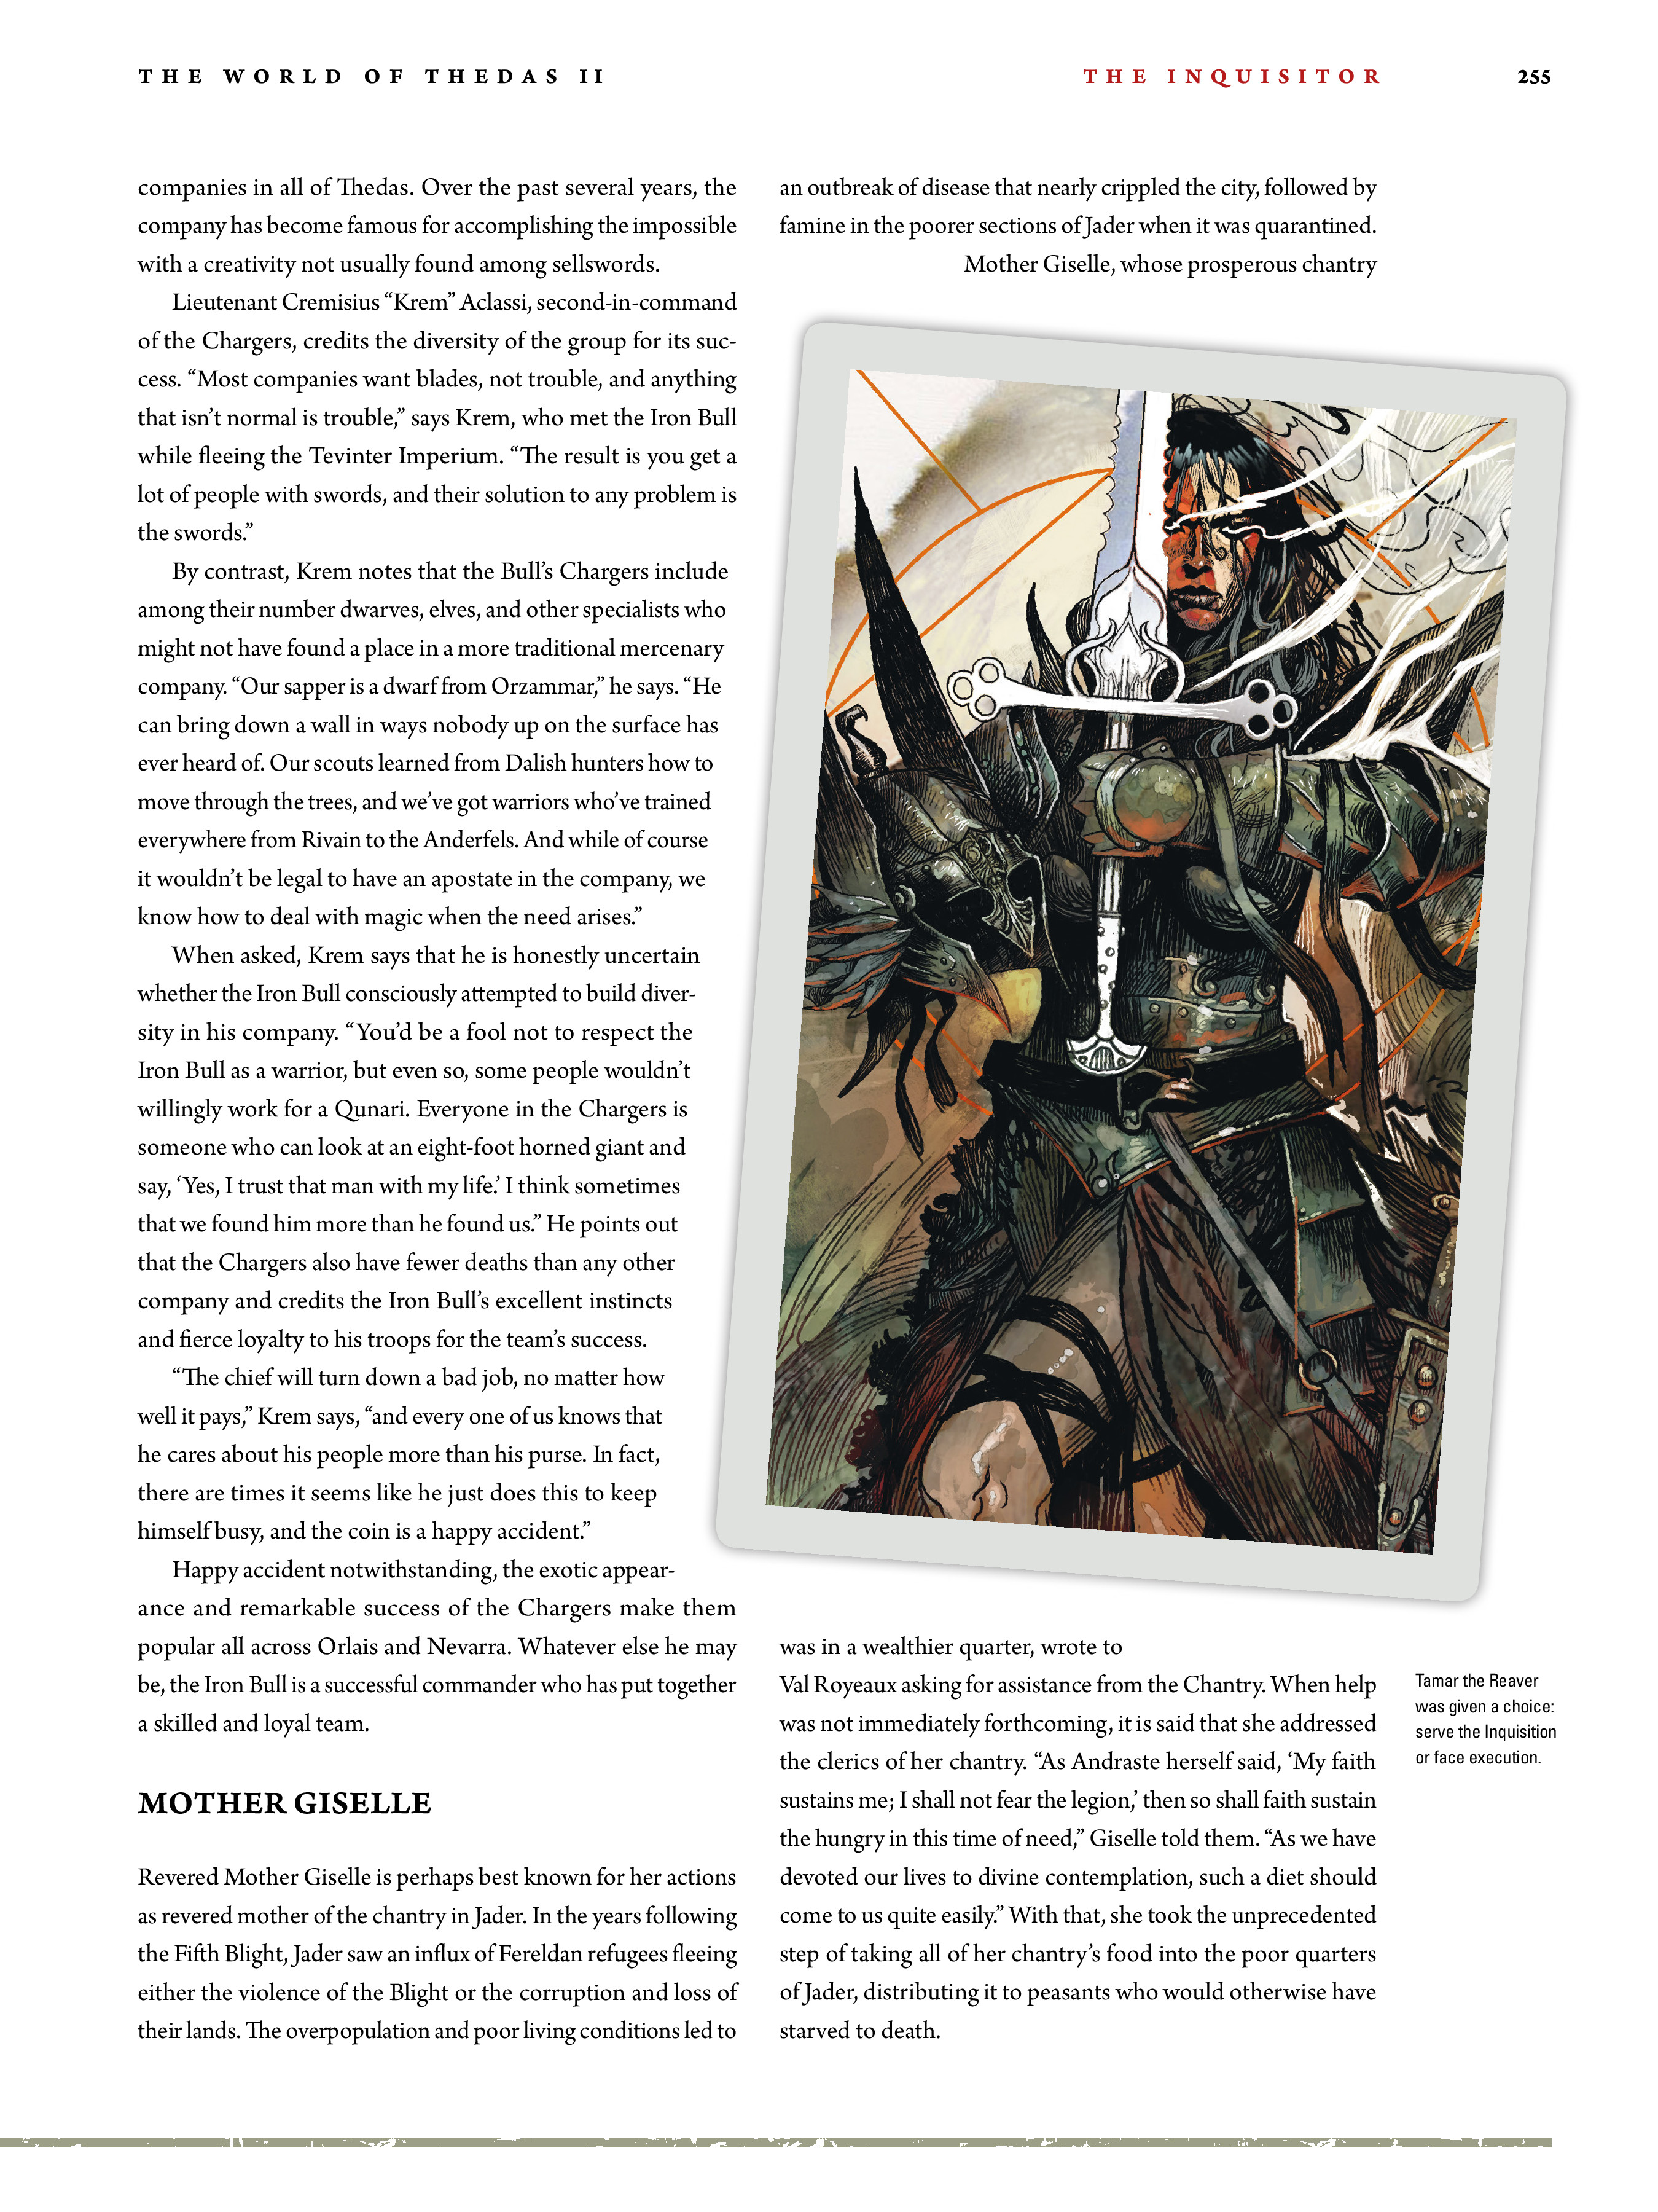 Read online Dragon Age: The World of Thedas comic -  Issue # TPB 2 - 248